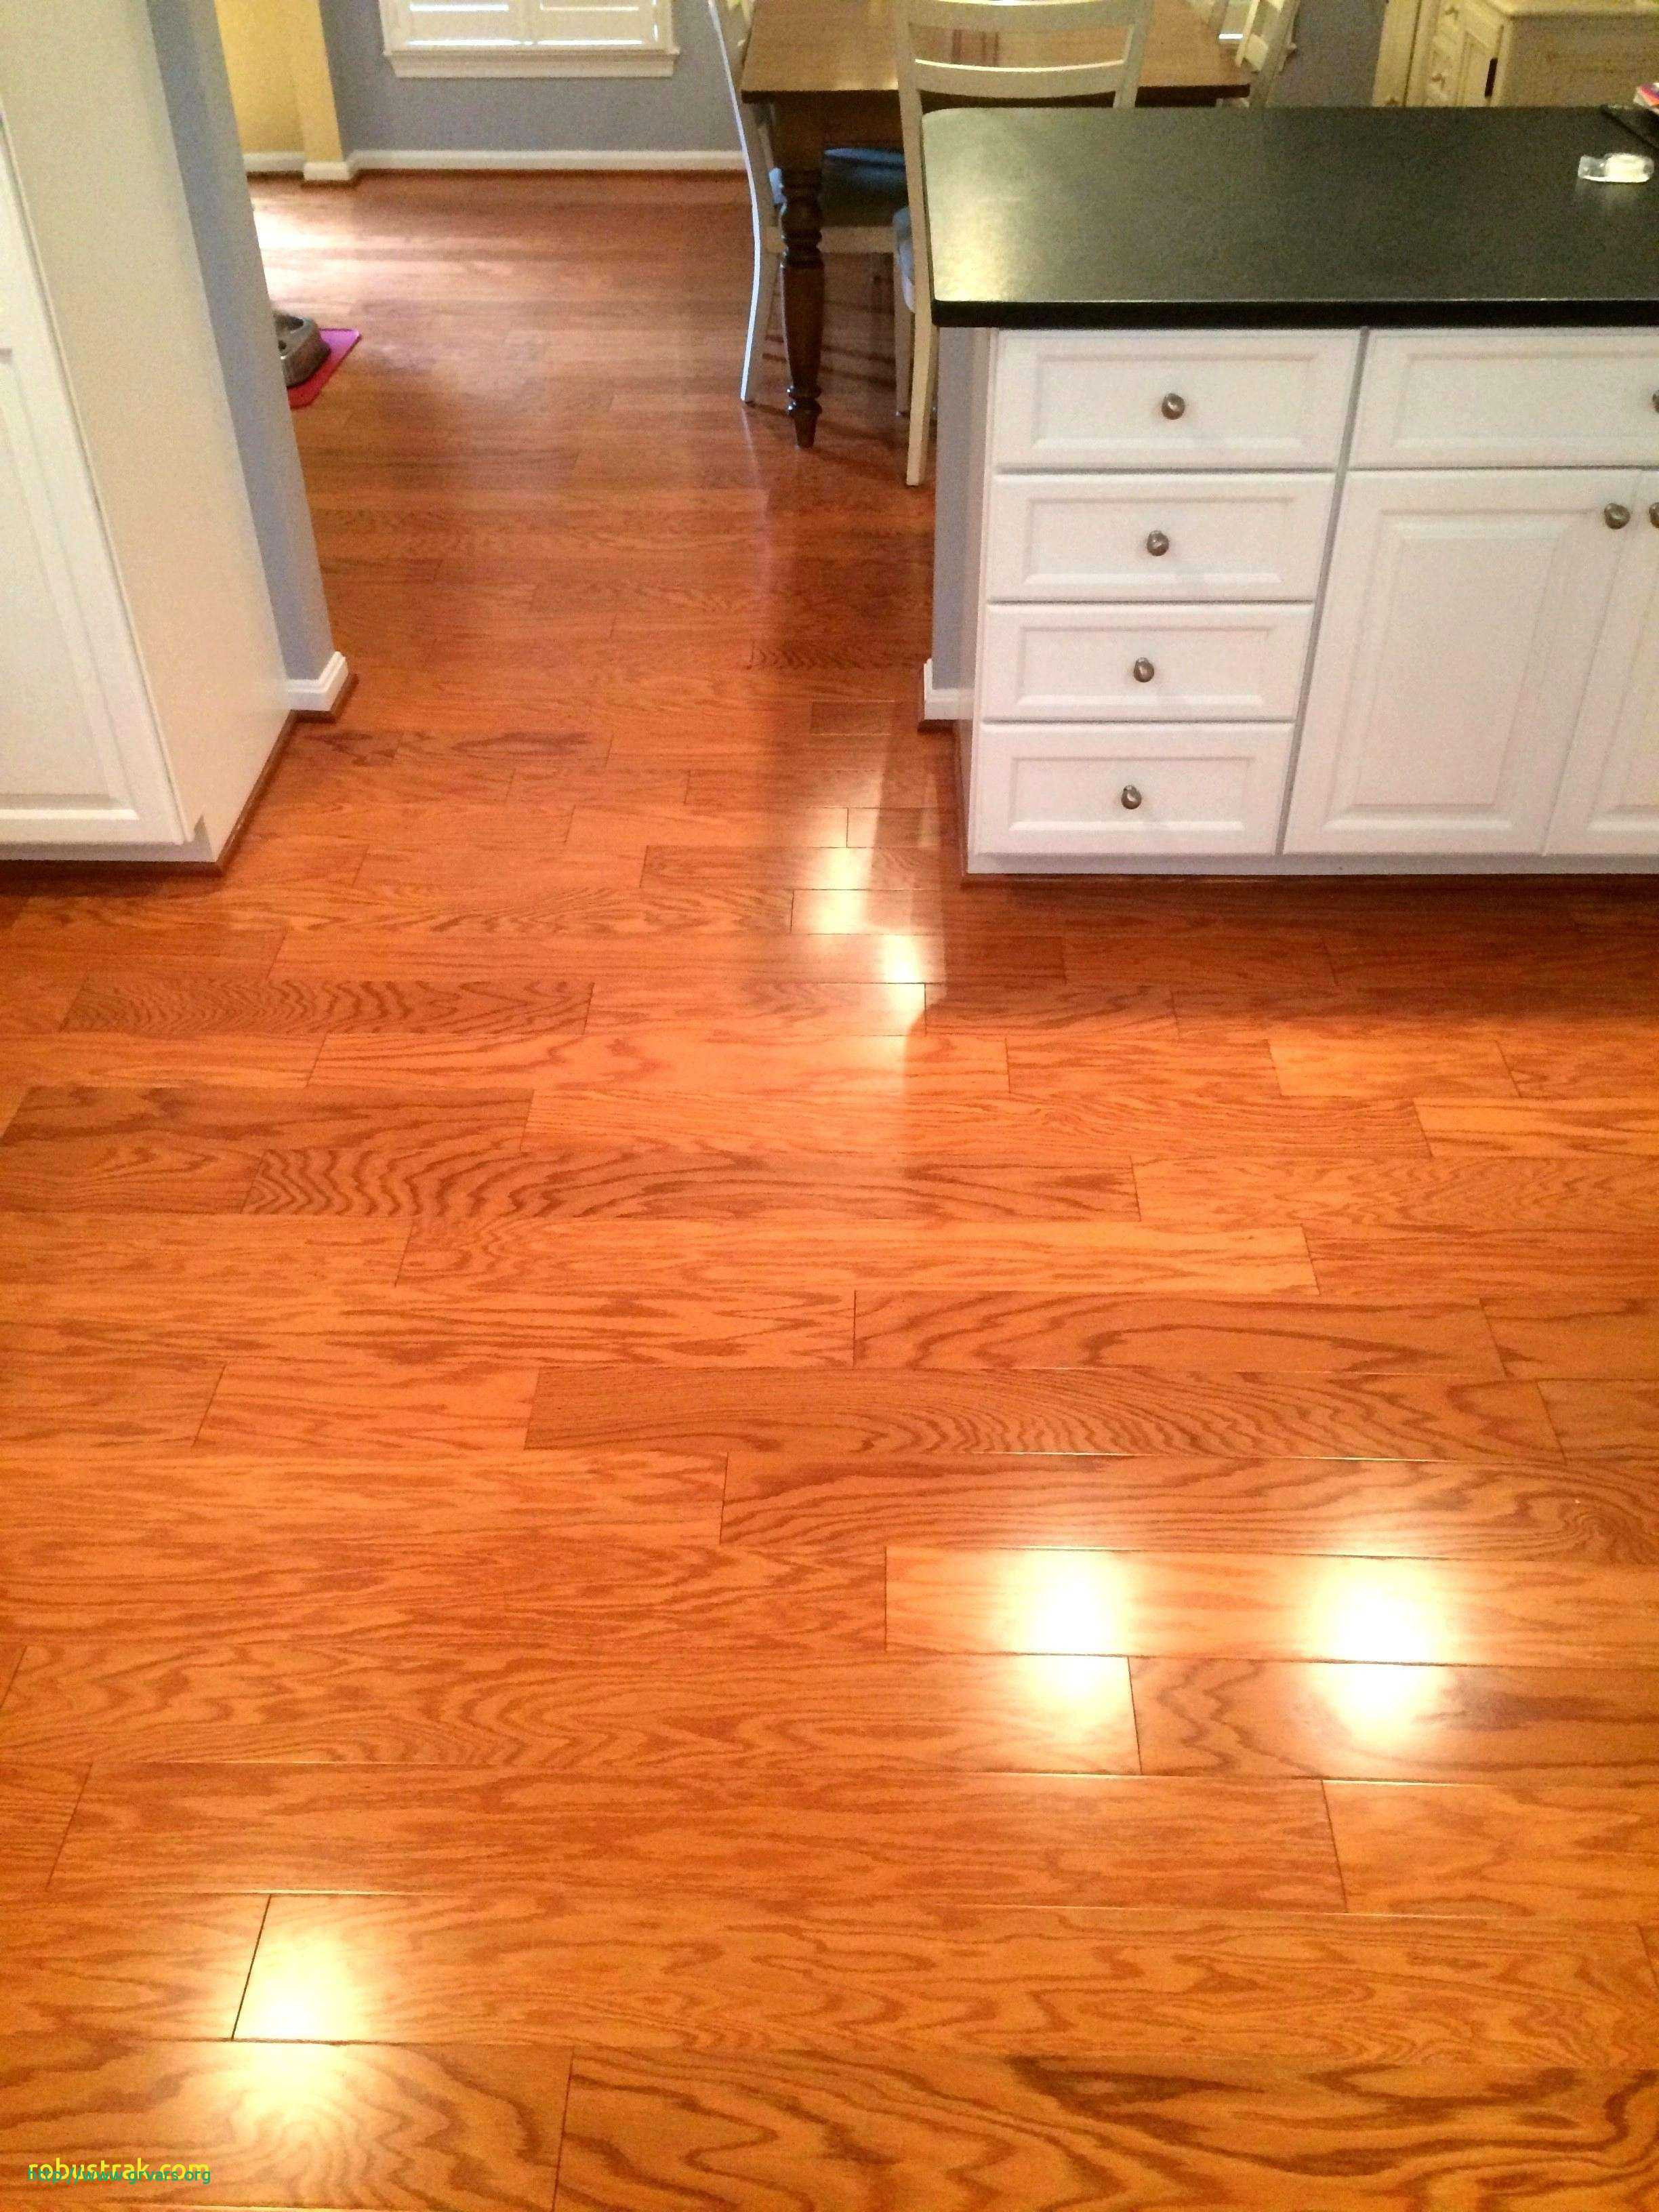 White Oak Plank Hardwood Flooring Of 25 Beau fore Wood Floors Ideas Blog Regarding Hardwood Floors In the Kitchen Fresh where to Buy Hardwood Flooring Inspirational 0d Grace Place Barnegat